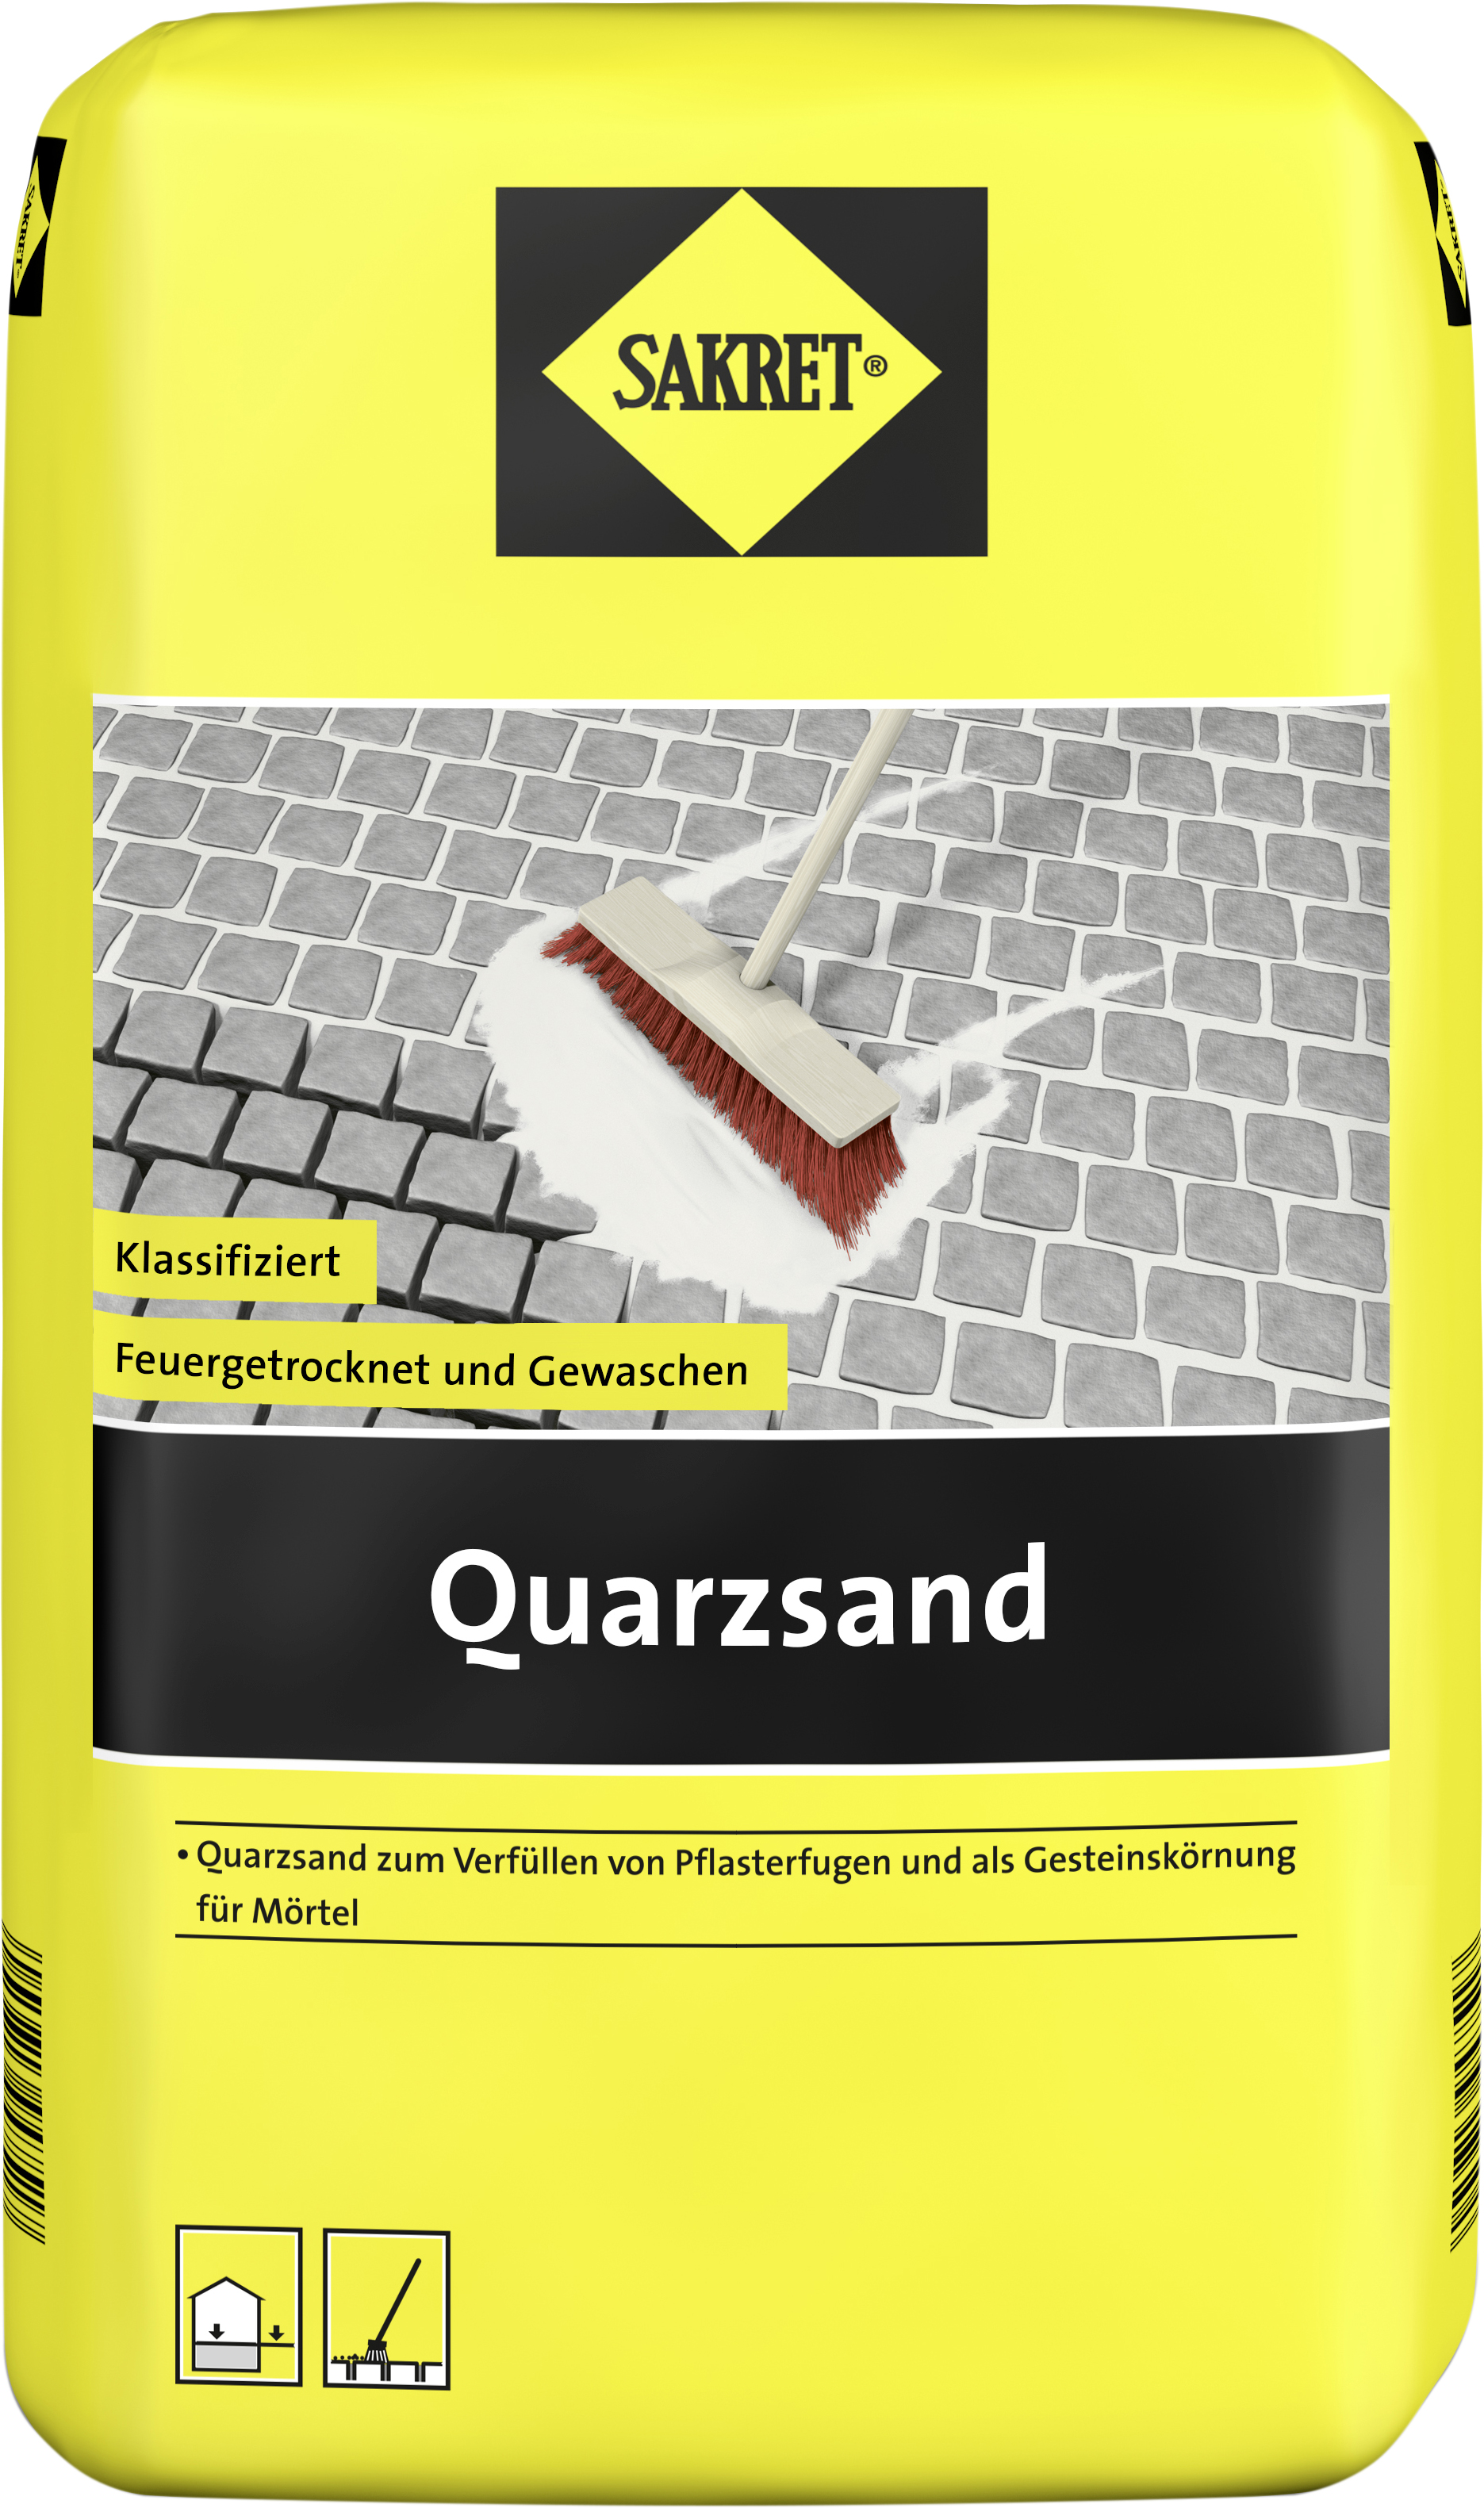 sakret quarzsand fugenmaterial spielsand globus baumarkt online shop. Black Bedroom Furniture Sets. Home Design Ideas